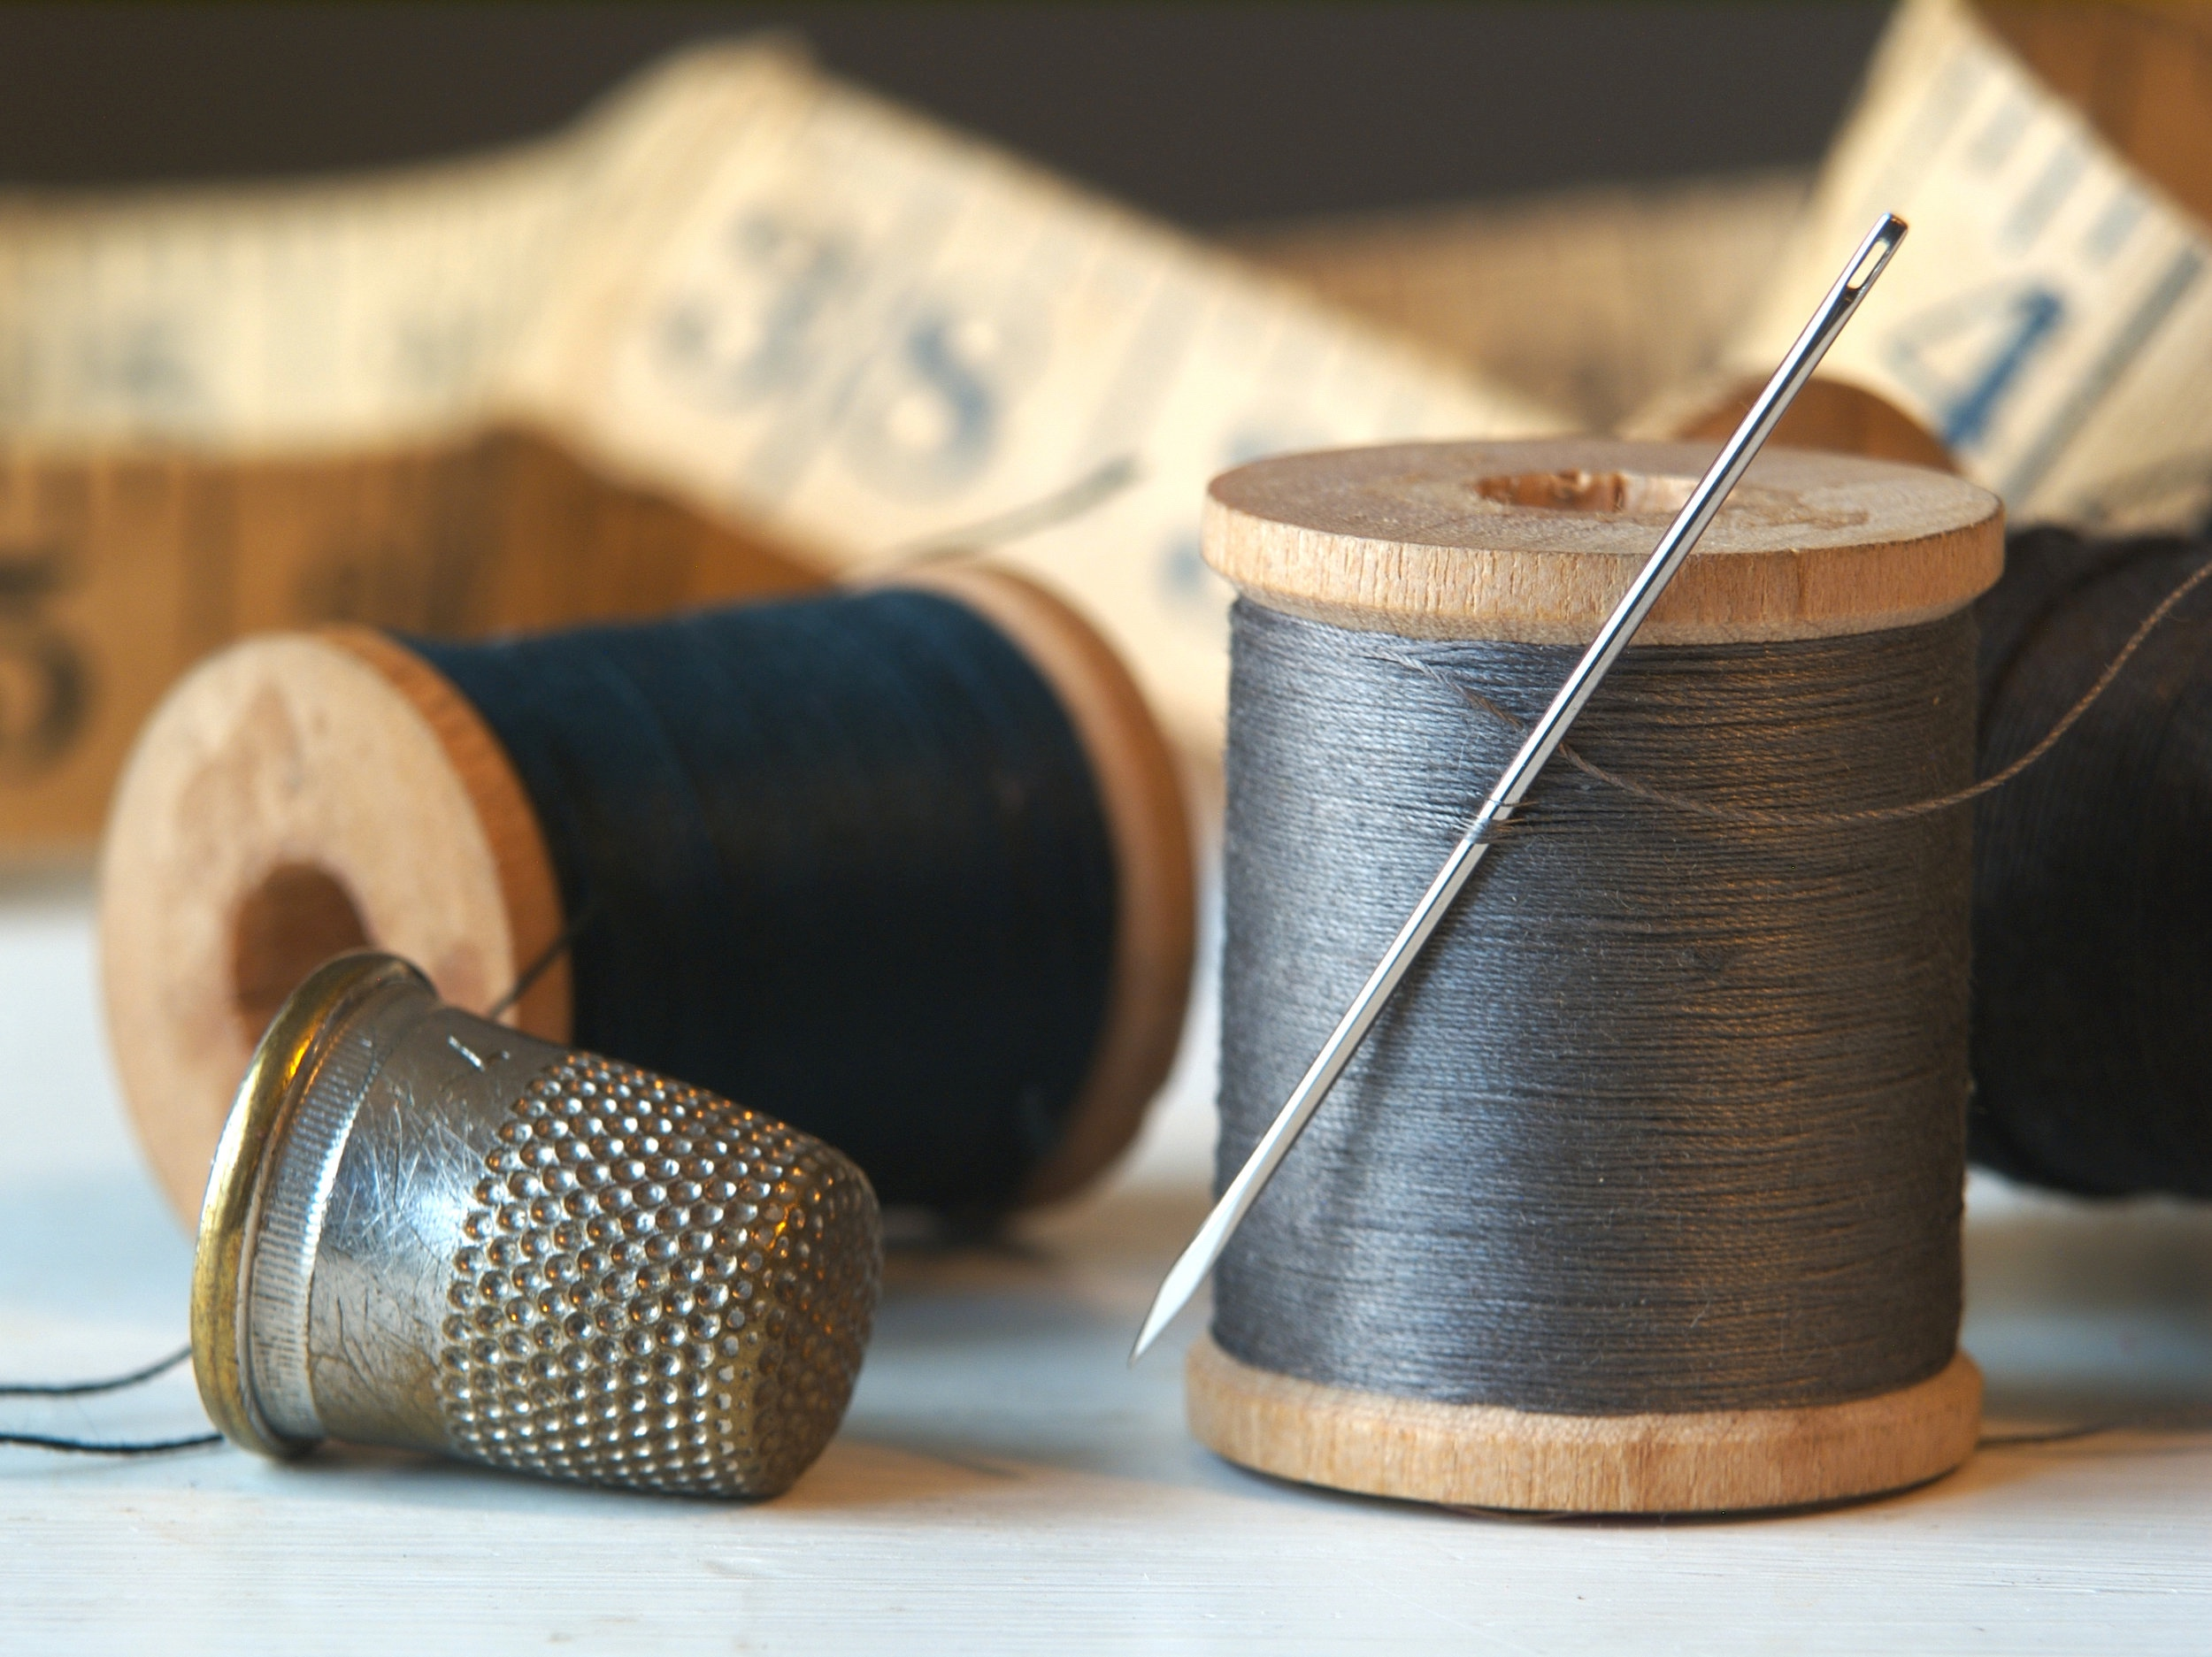 TAILOR TACKS & PINS - CUSTOM CLOTHINGALTERATIONS & ADULT SEWING CLASSES